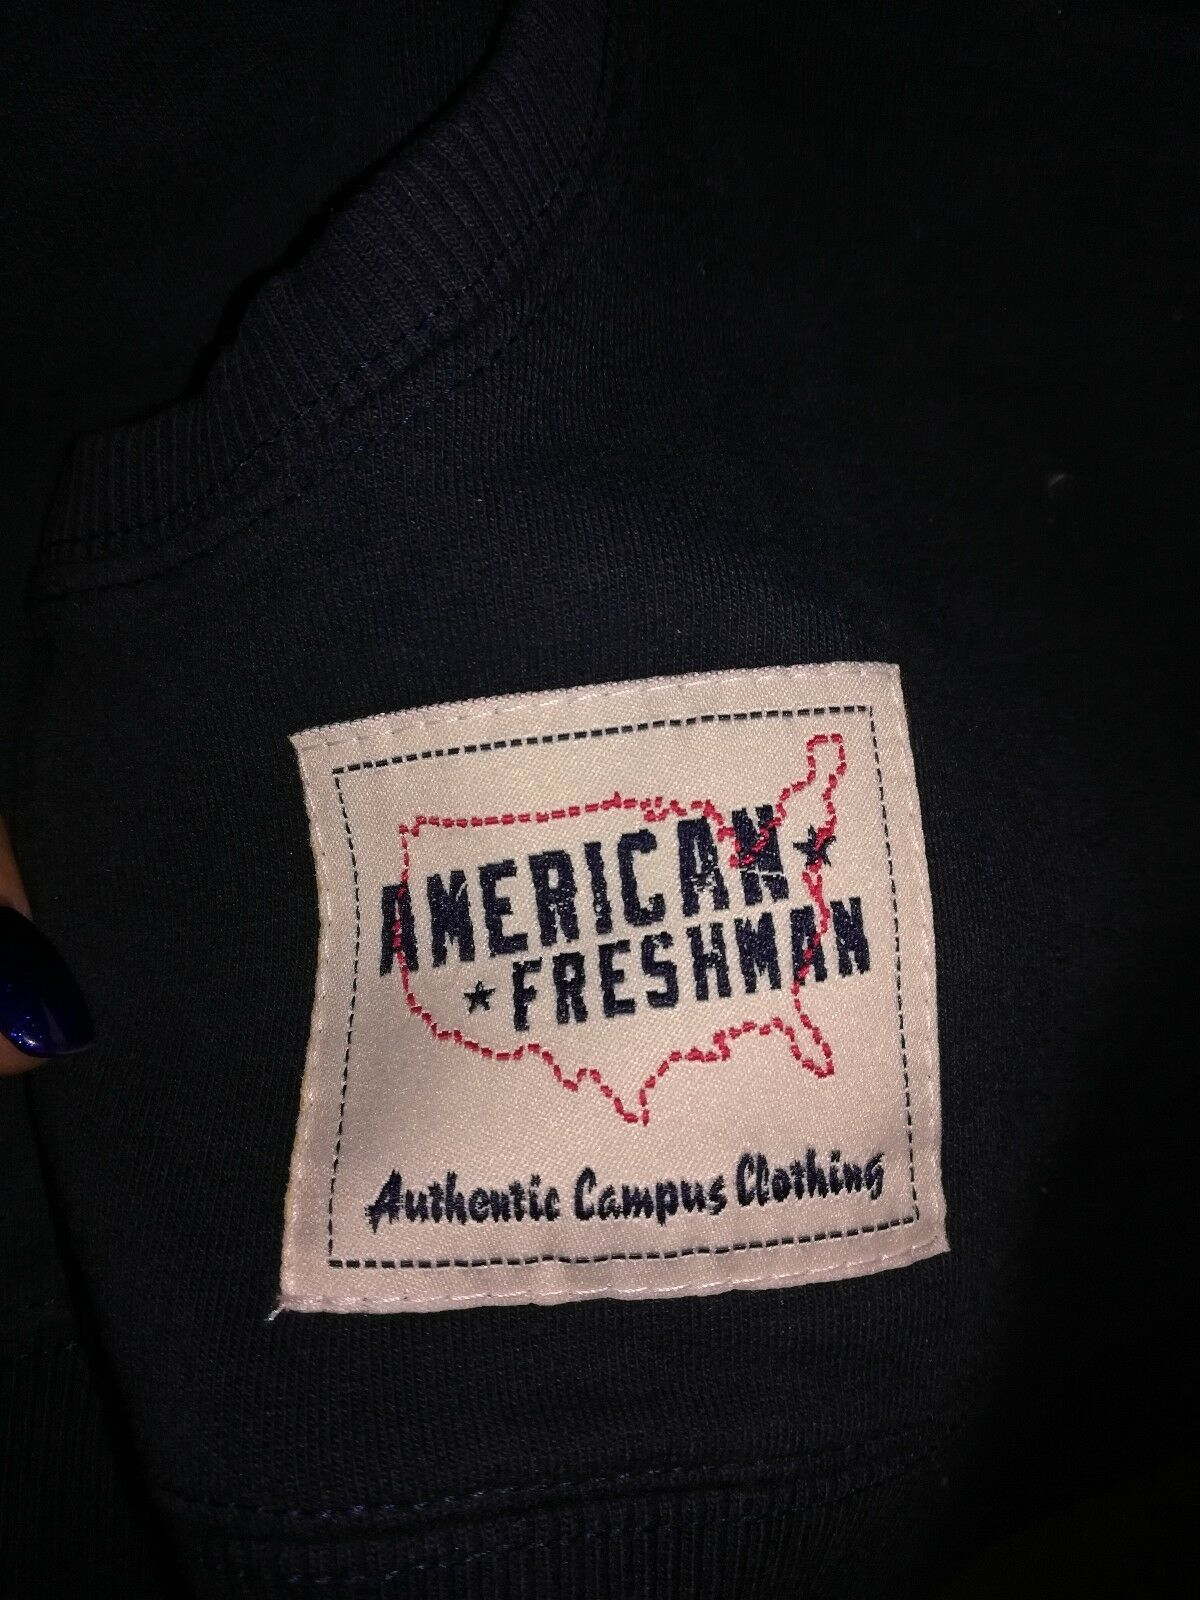 AMERICAN FRESHMAN Felpa mujer mujer mujer Color azul Scuro TG M Authentic Campus Clothing b38a23